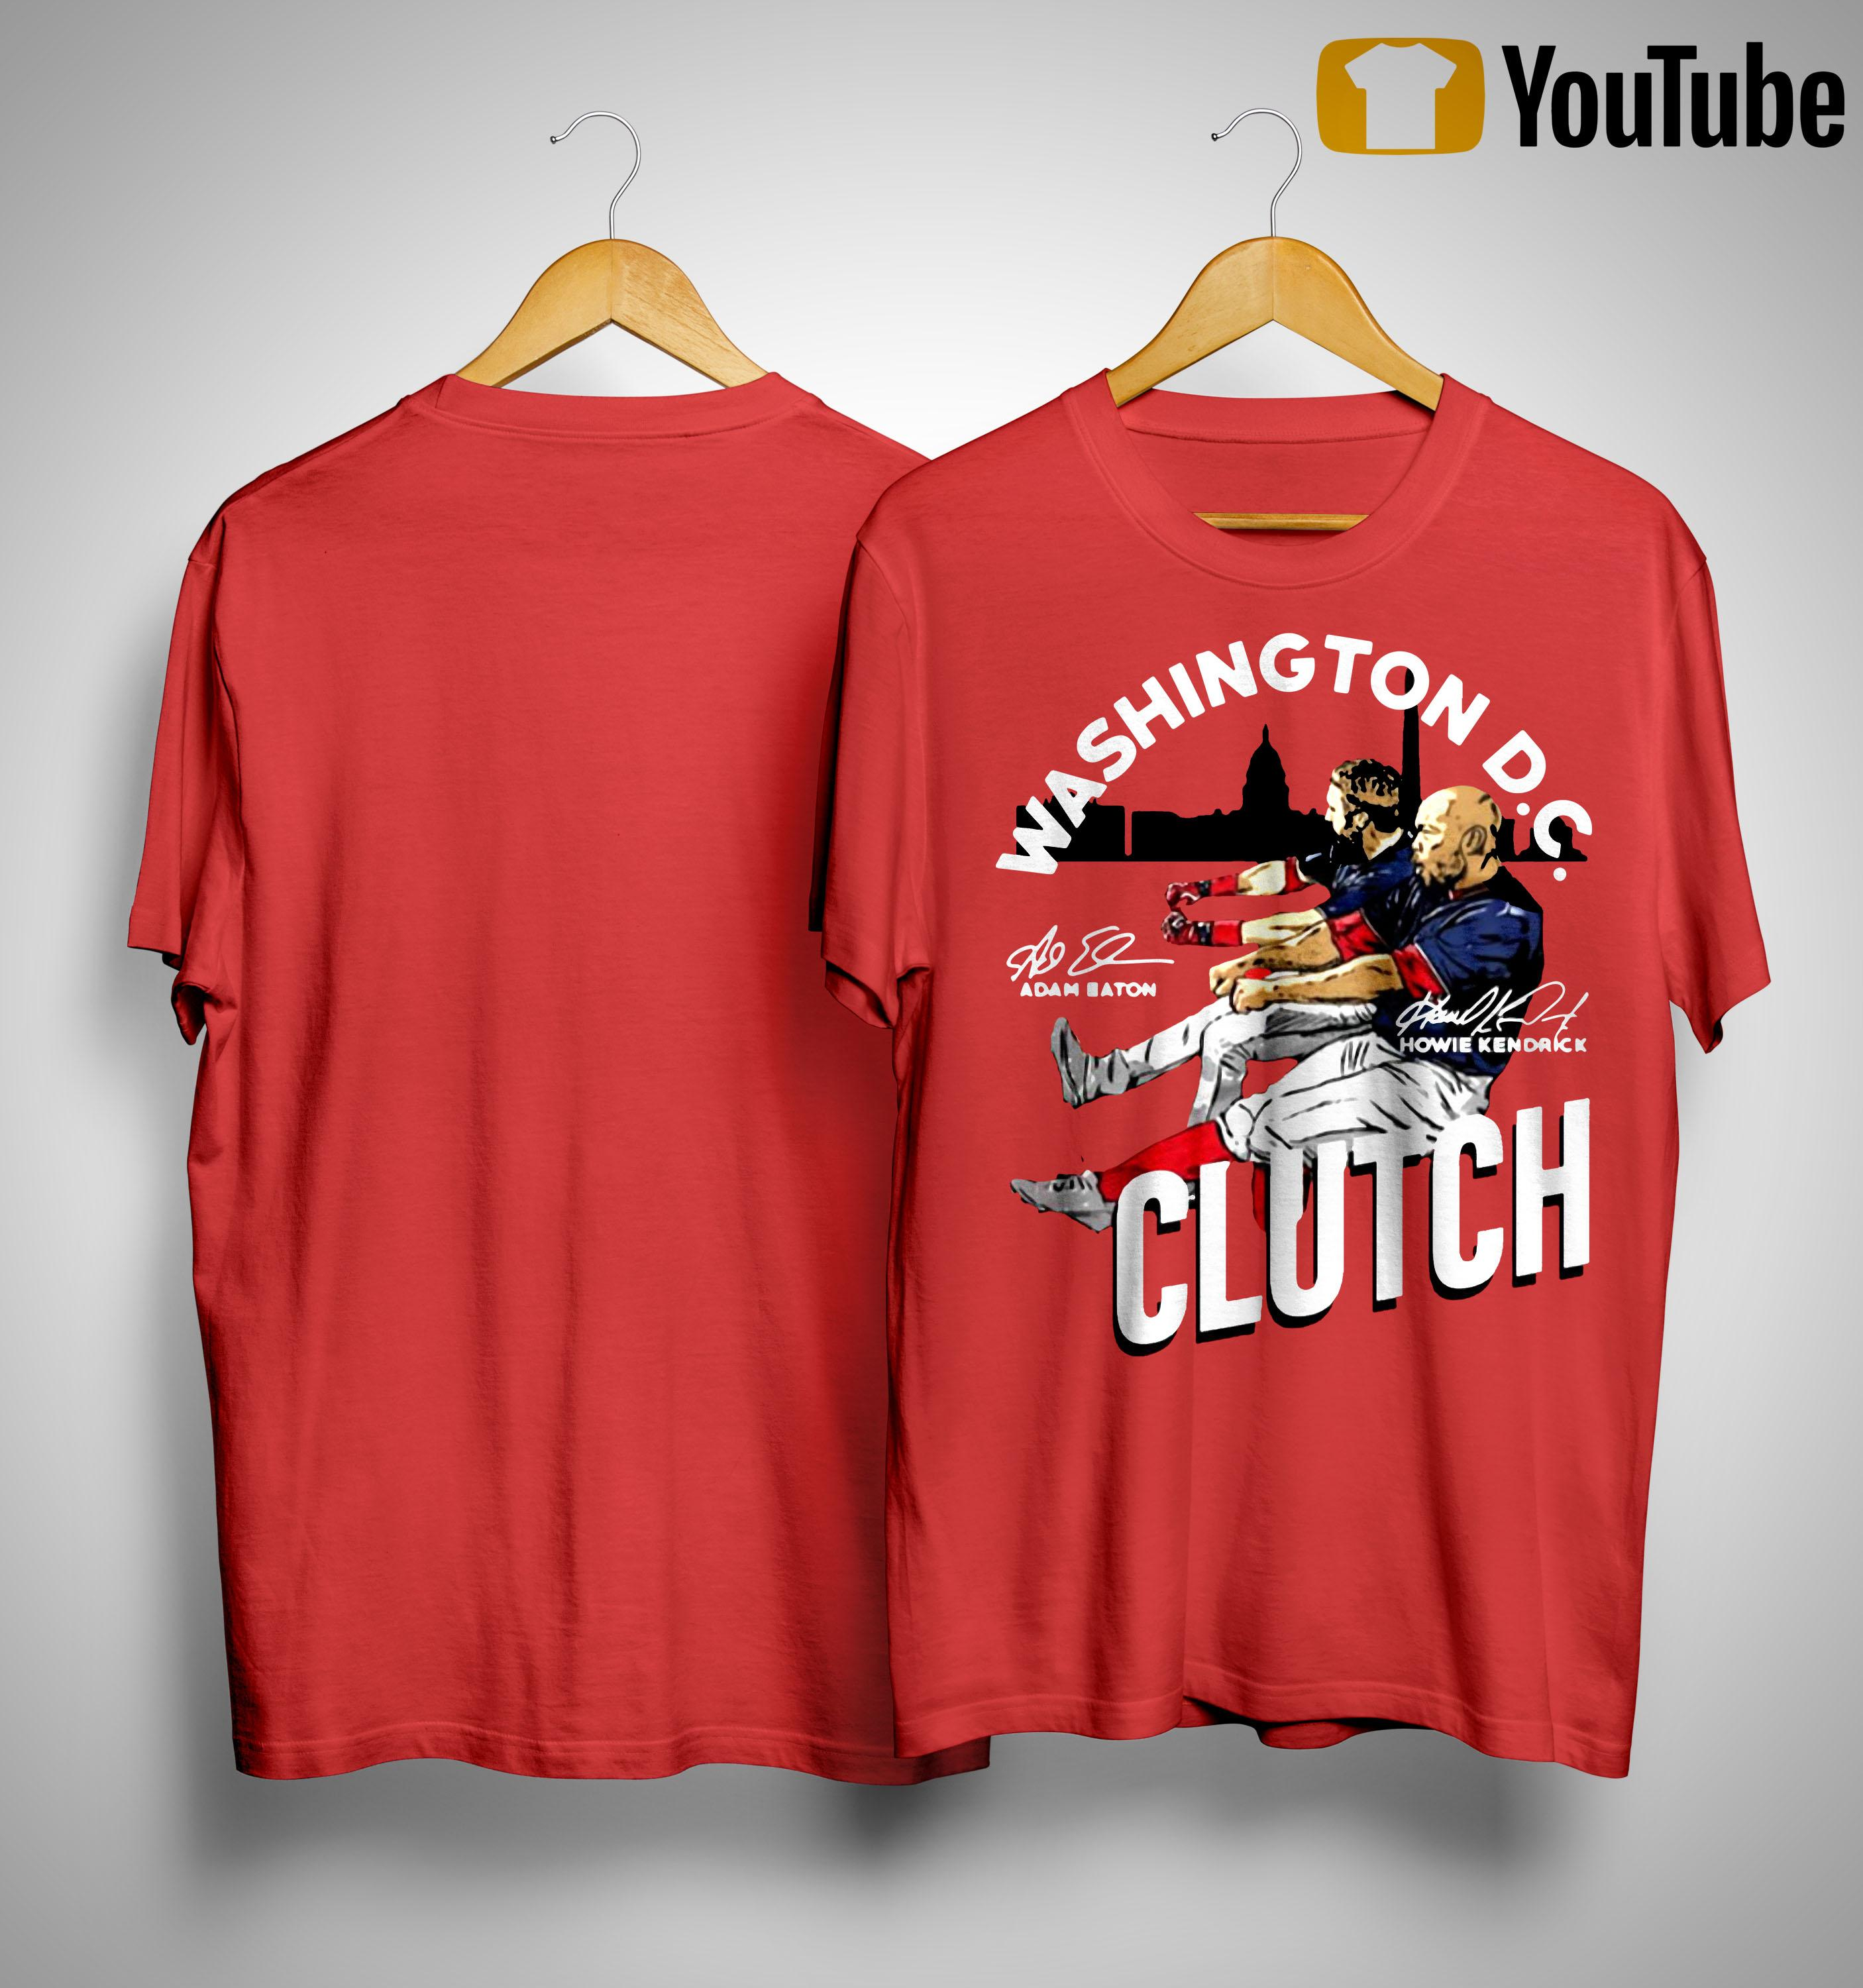 Adam Eaton Howie Kendrick Washington Dc Clutch Shirt